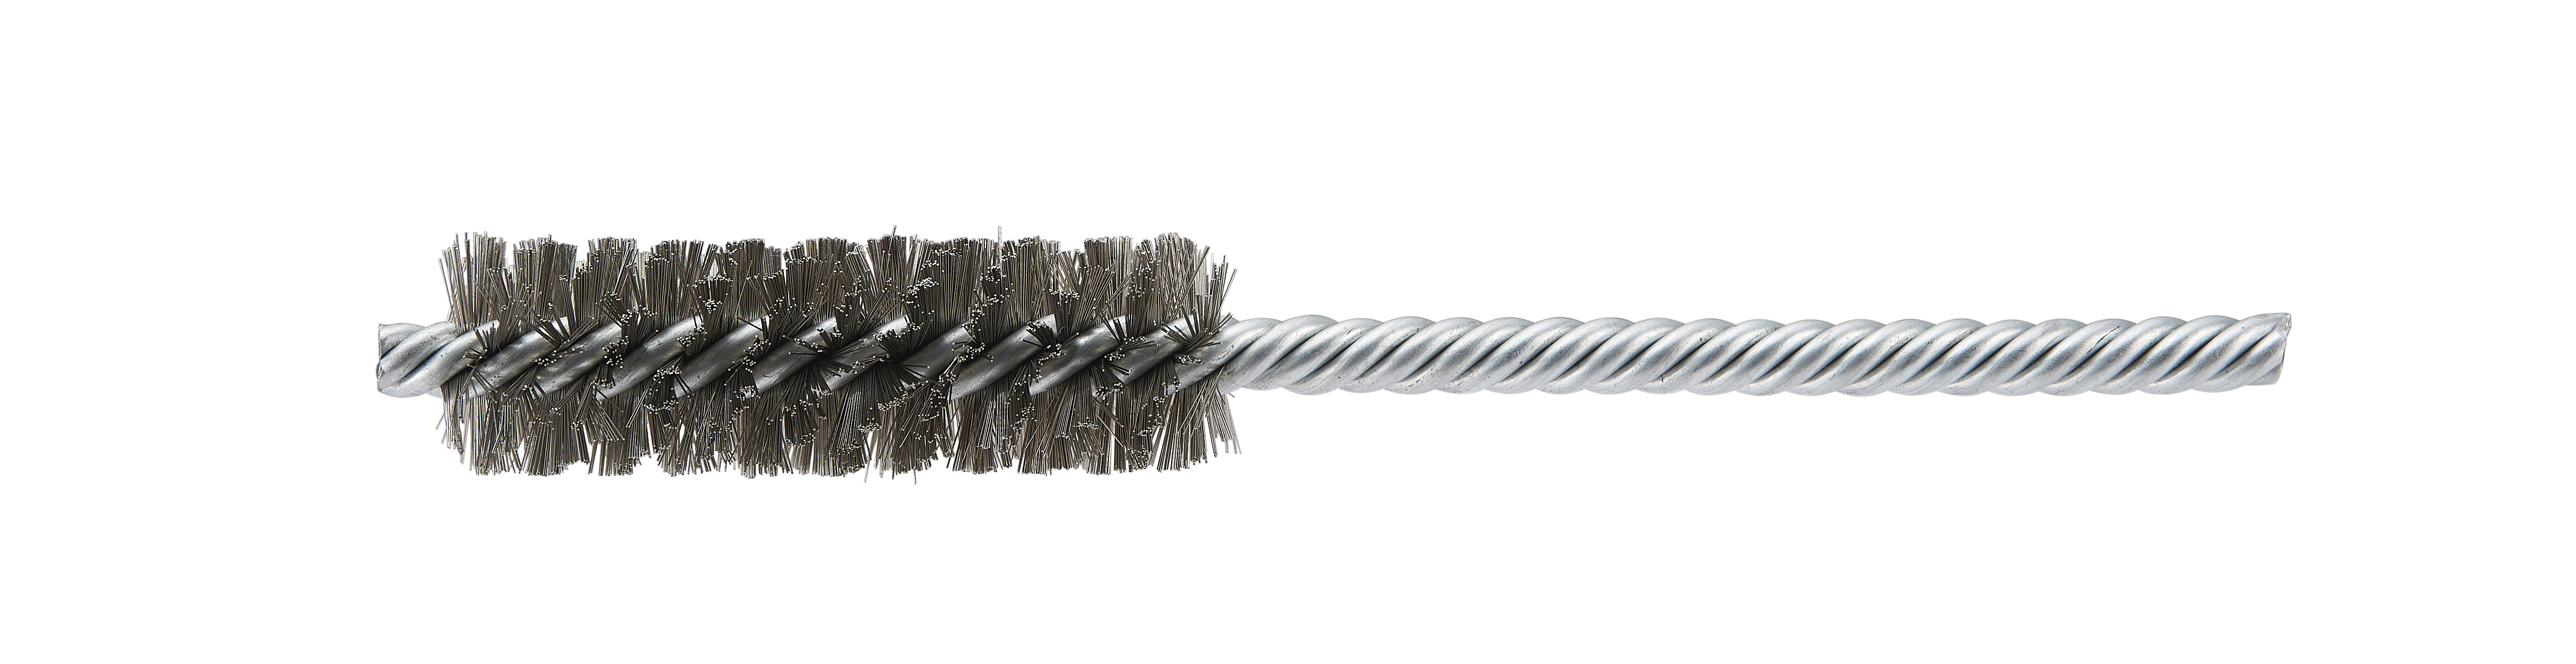 05206 Power Tube Brush